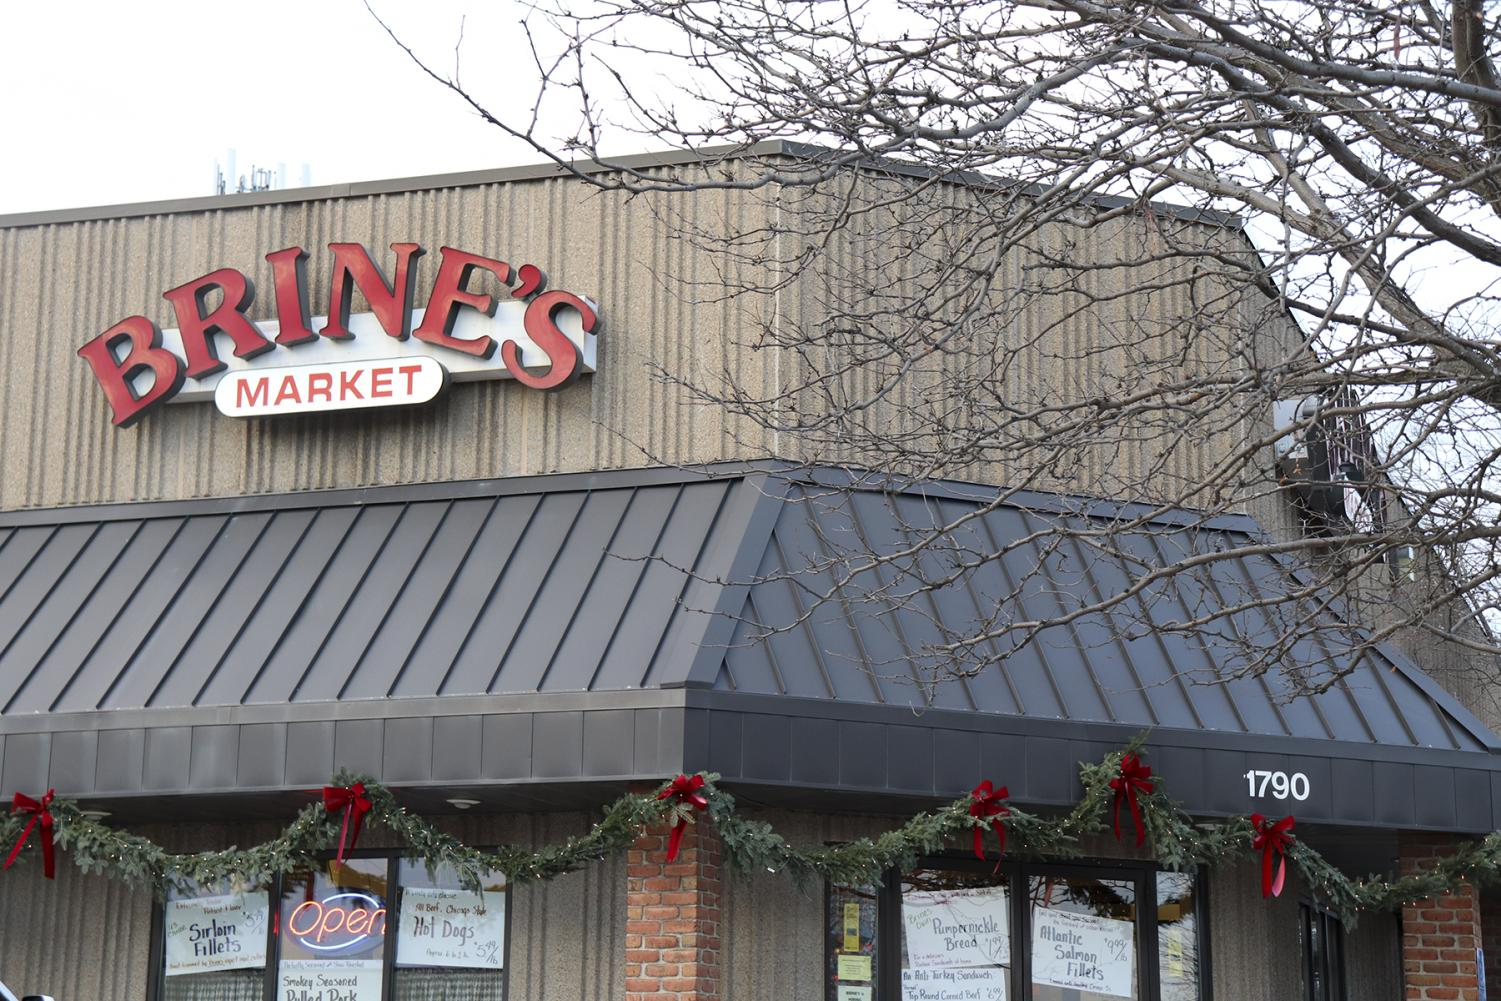 Brines+building%2C+which+is+located+just+outside+of+downtown+Stillwater%2C+has+been+in+their+building+for+over+30+years.